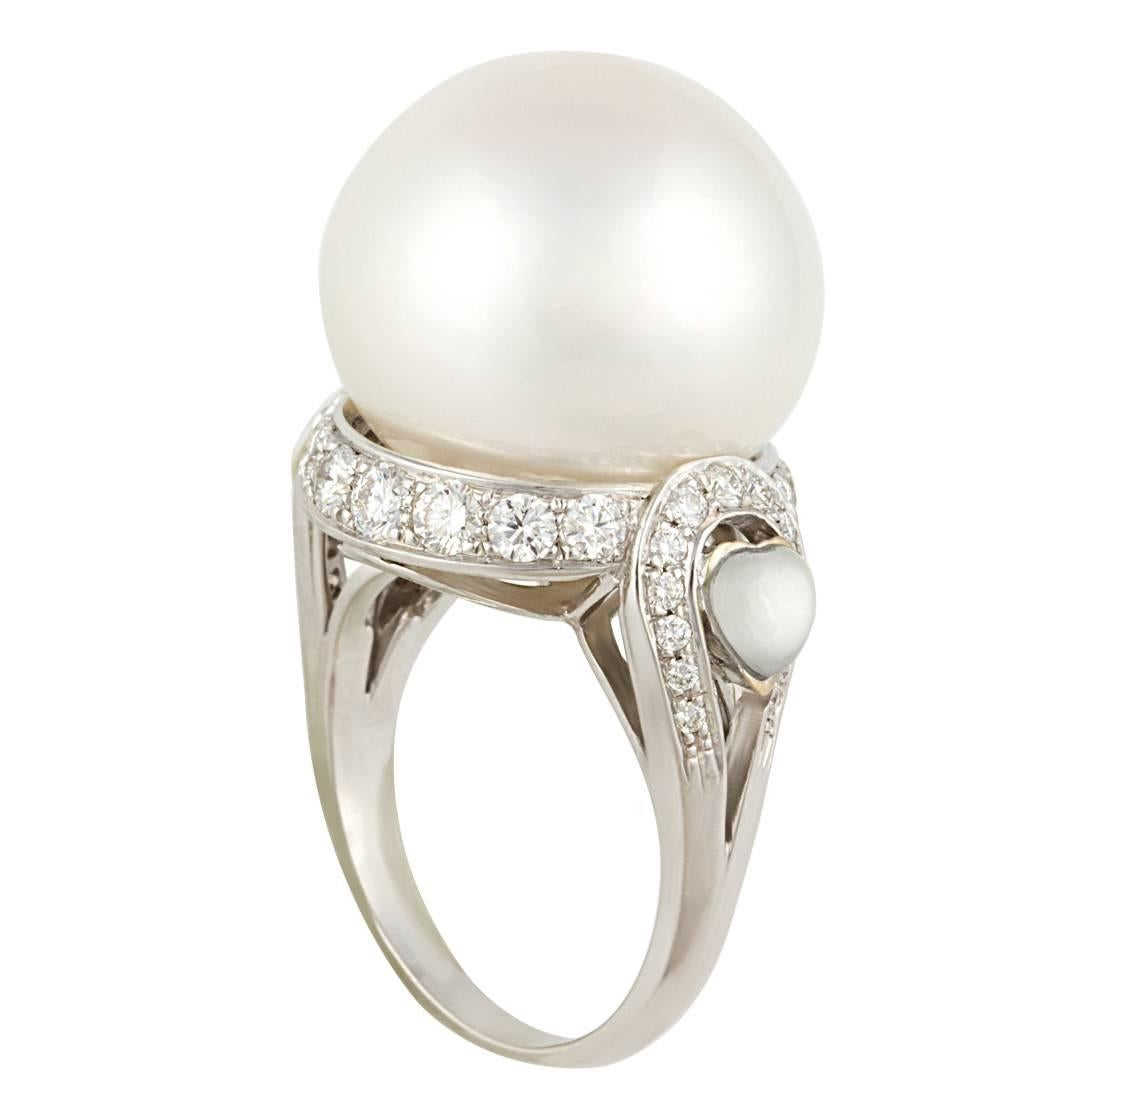 Ella Gafter 18mm South Sea Pearl Diamond Cocktail Ring